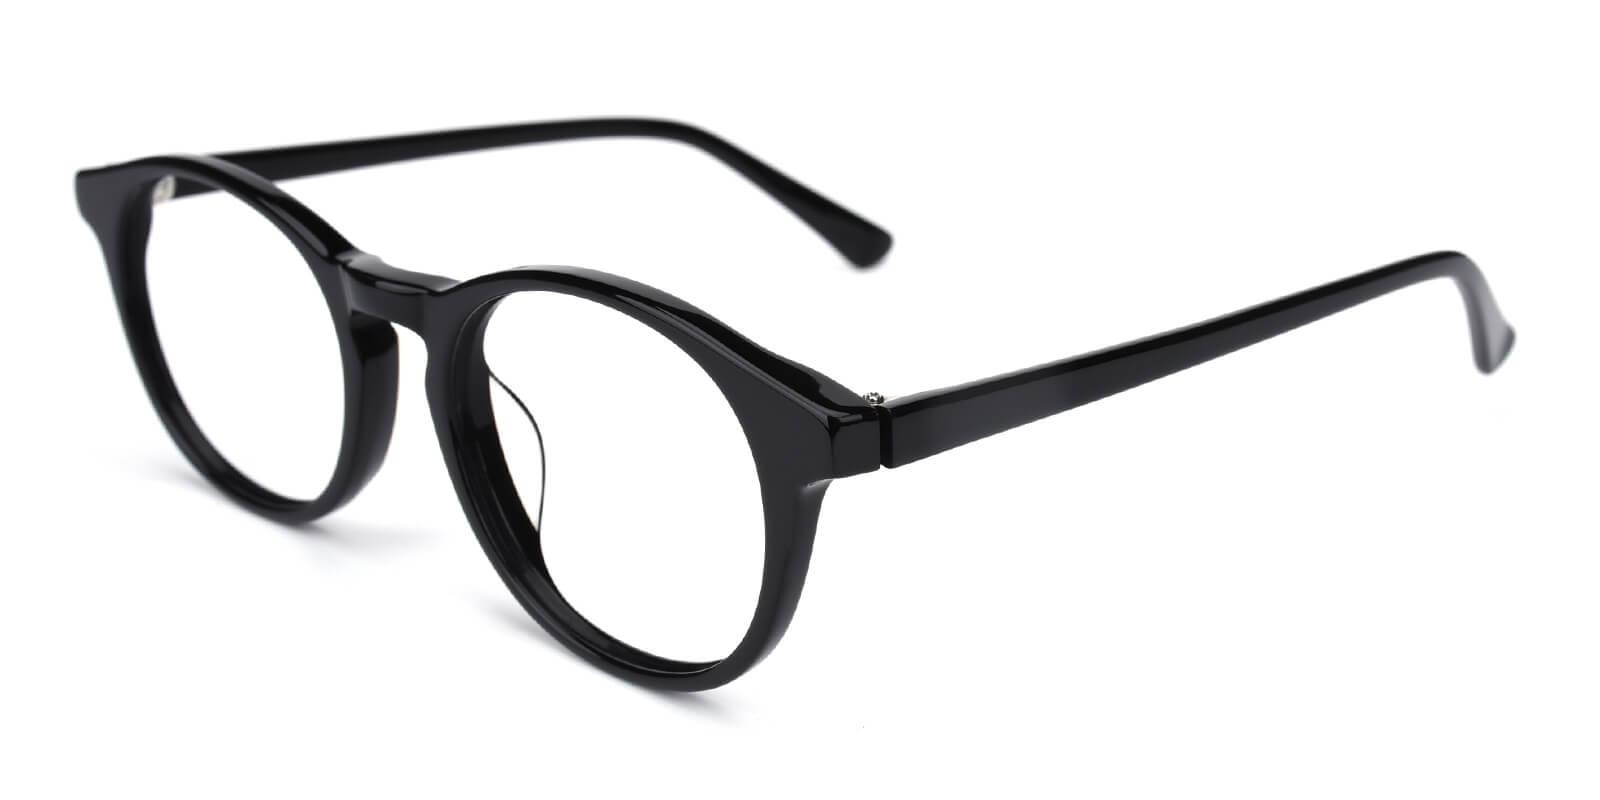 Concept-Black-Oval-Acetate-Eyeglasses-additional1